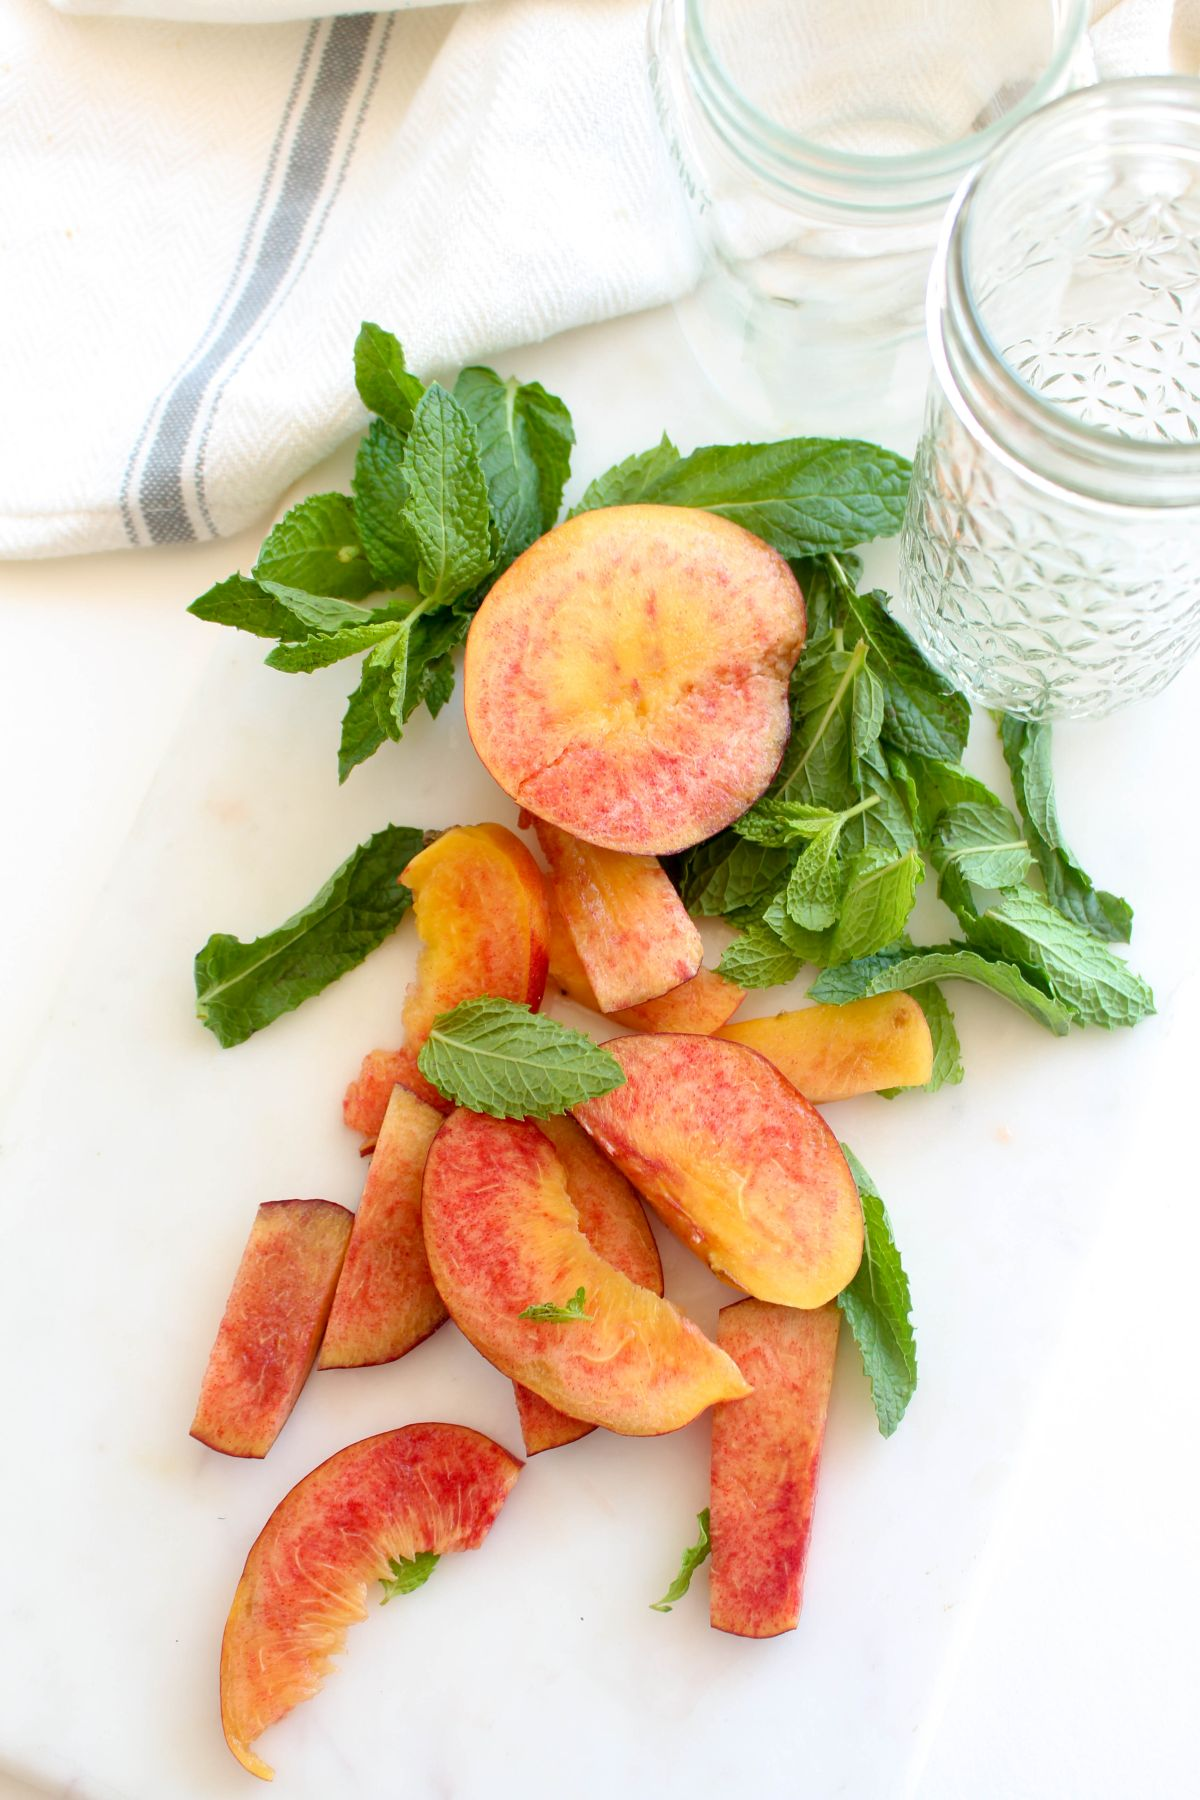 Chop the peaches and pull the mint leaf